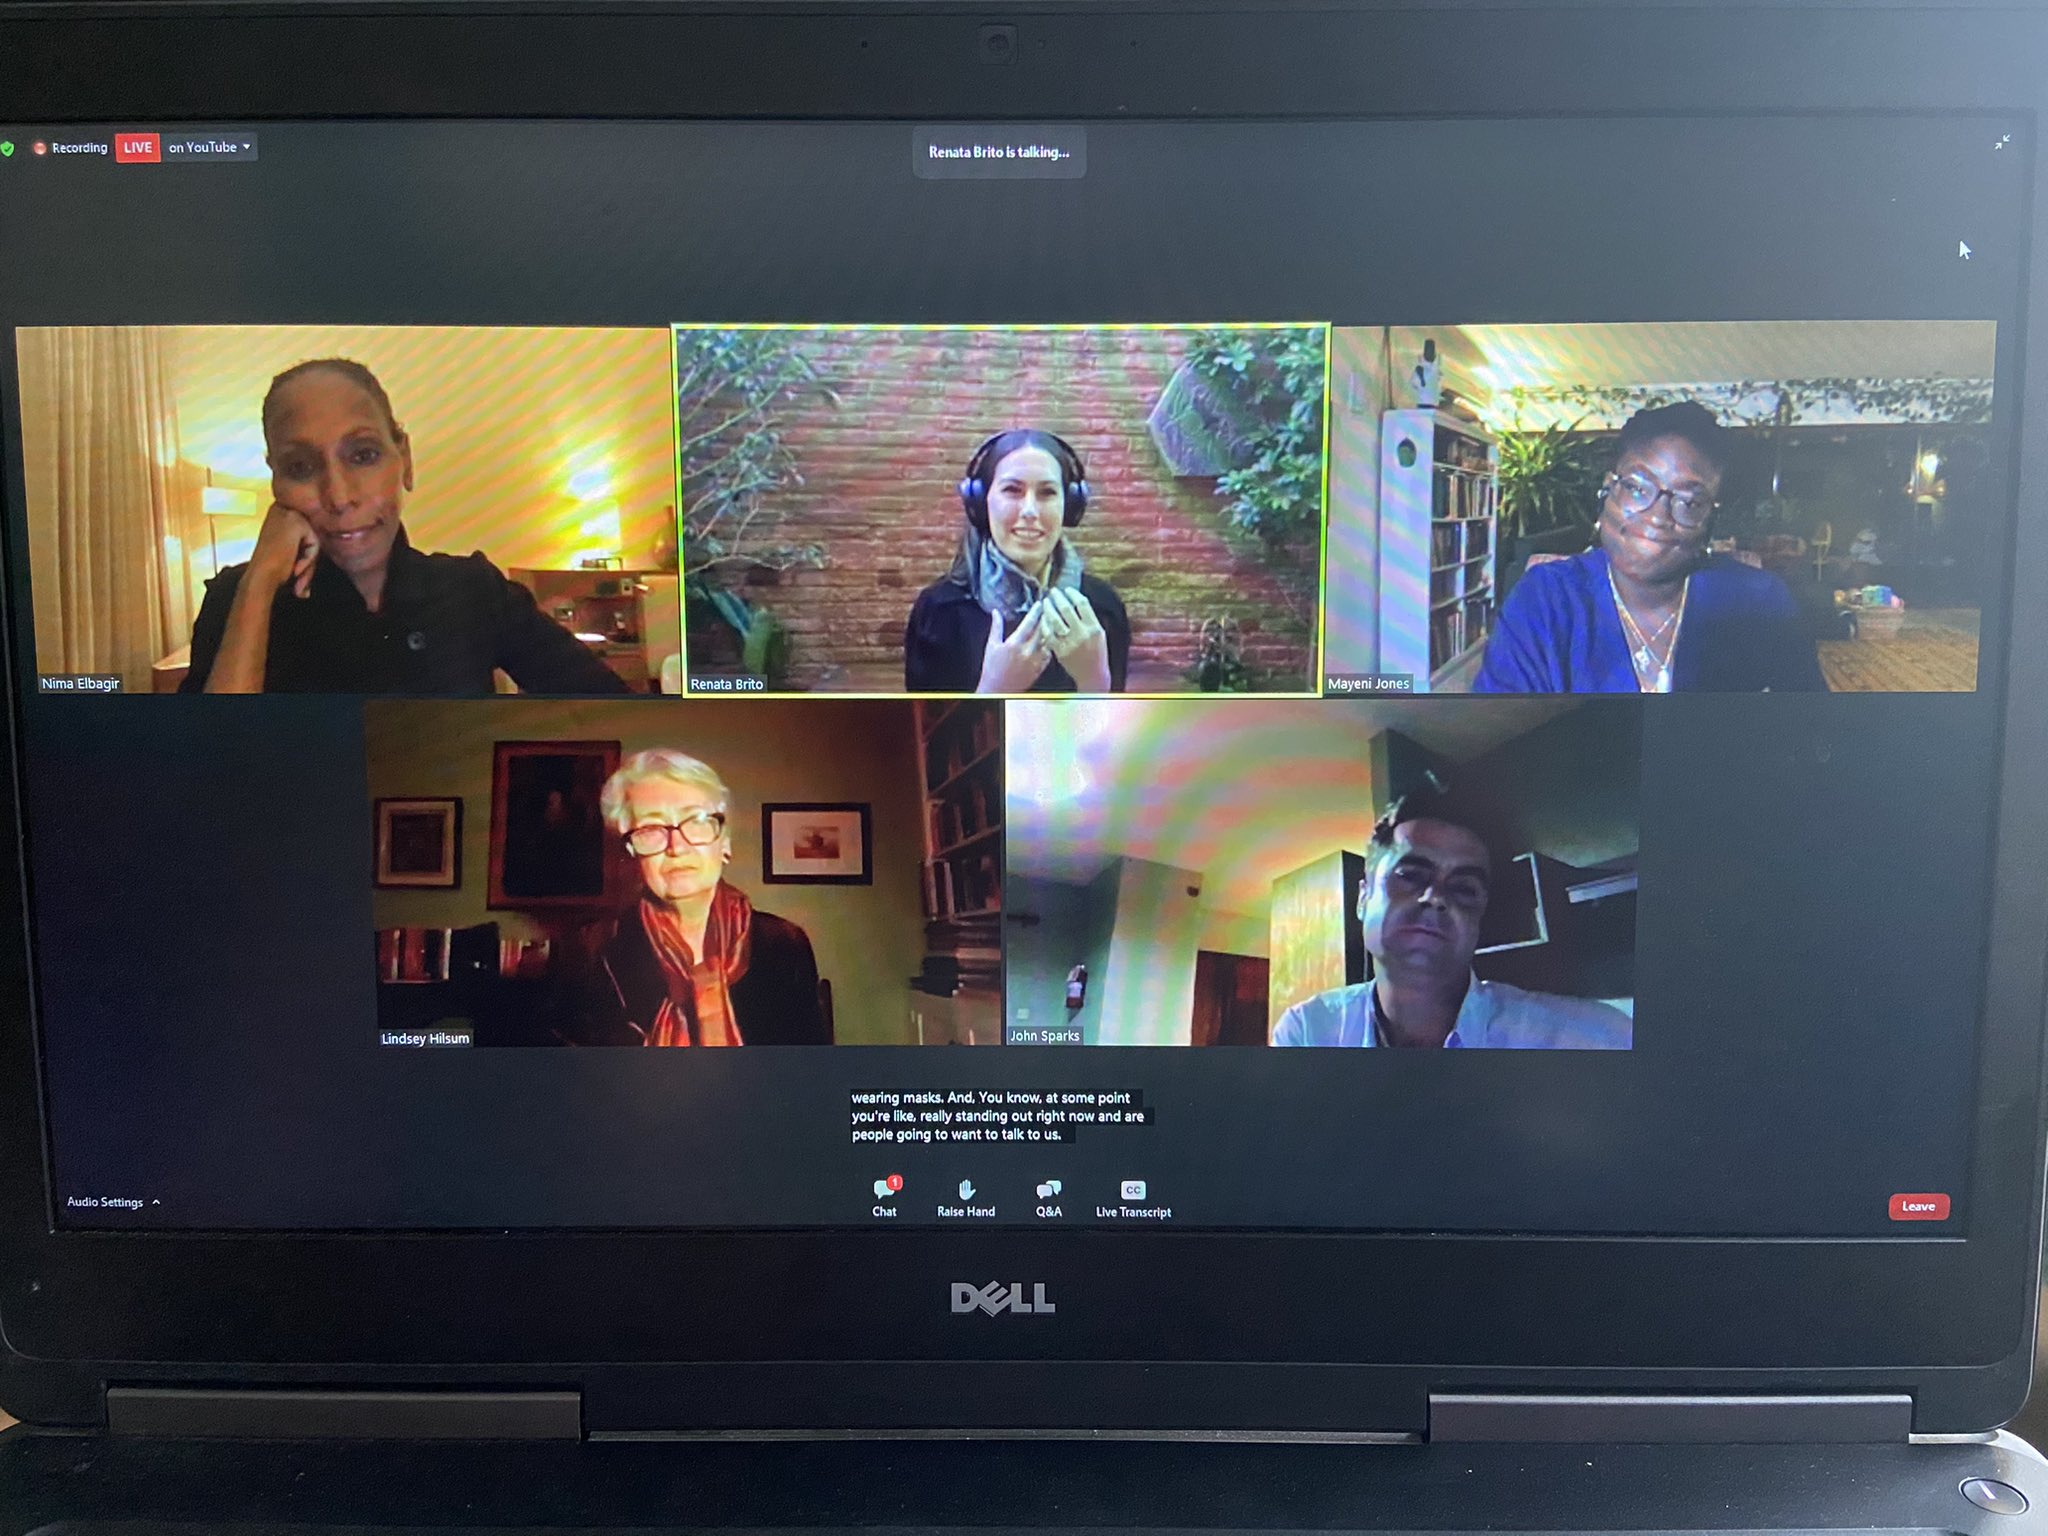 An image of a laptop screen with Nima Elbagir, Renata Brito, Mayeni Jones, Lindsey Hilsum, and John Sparks speaking on a Zoom webinar